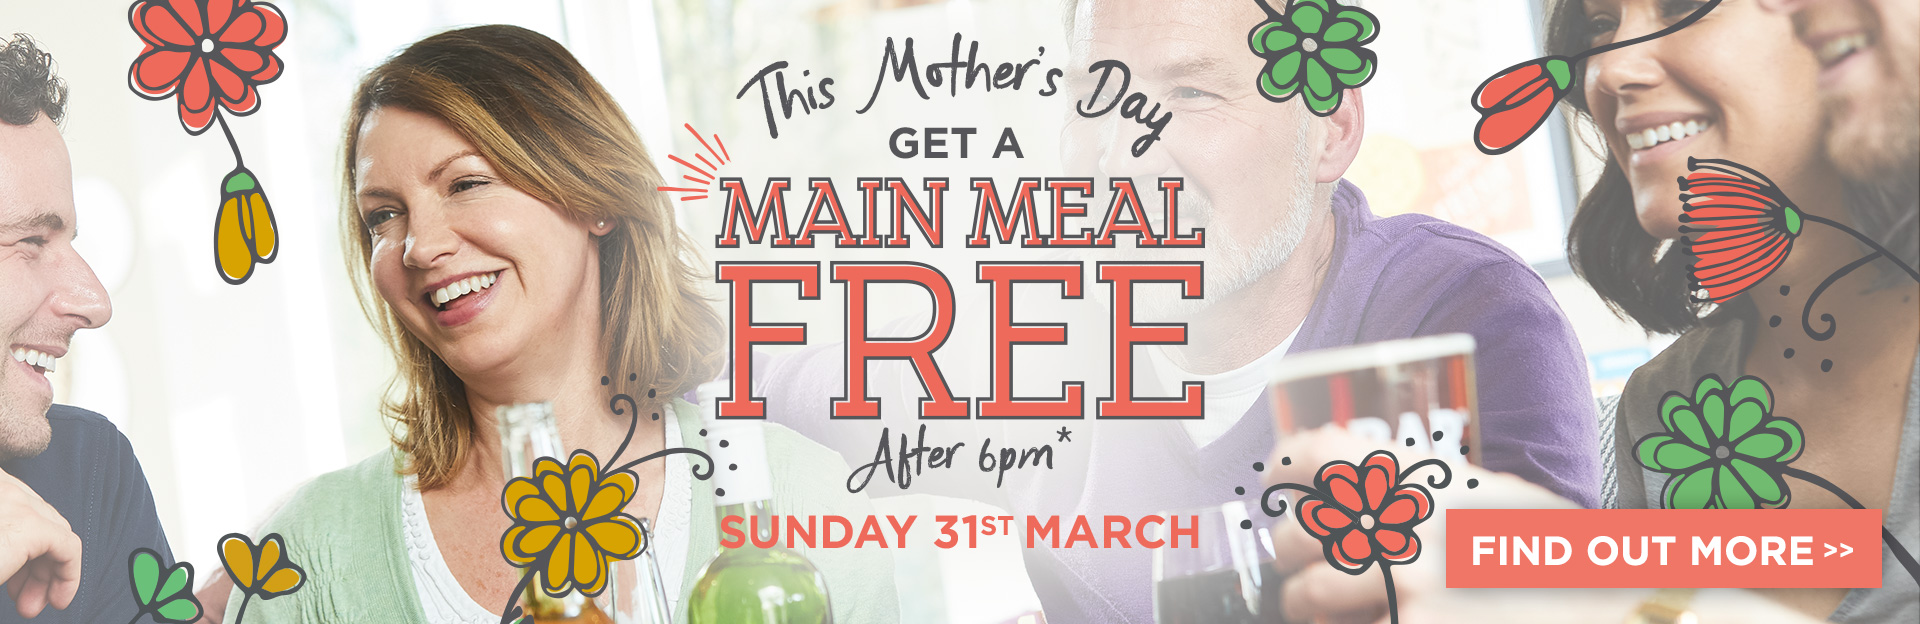 Mother's Day at The Town House